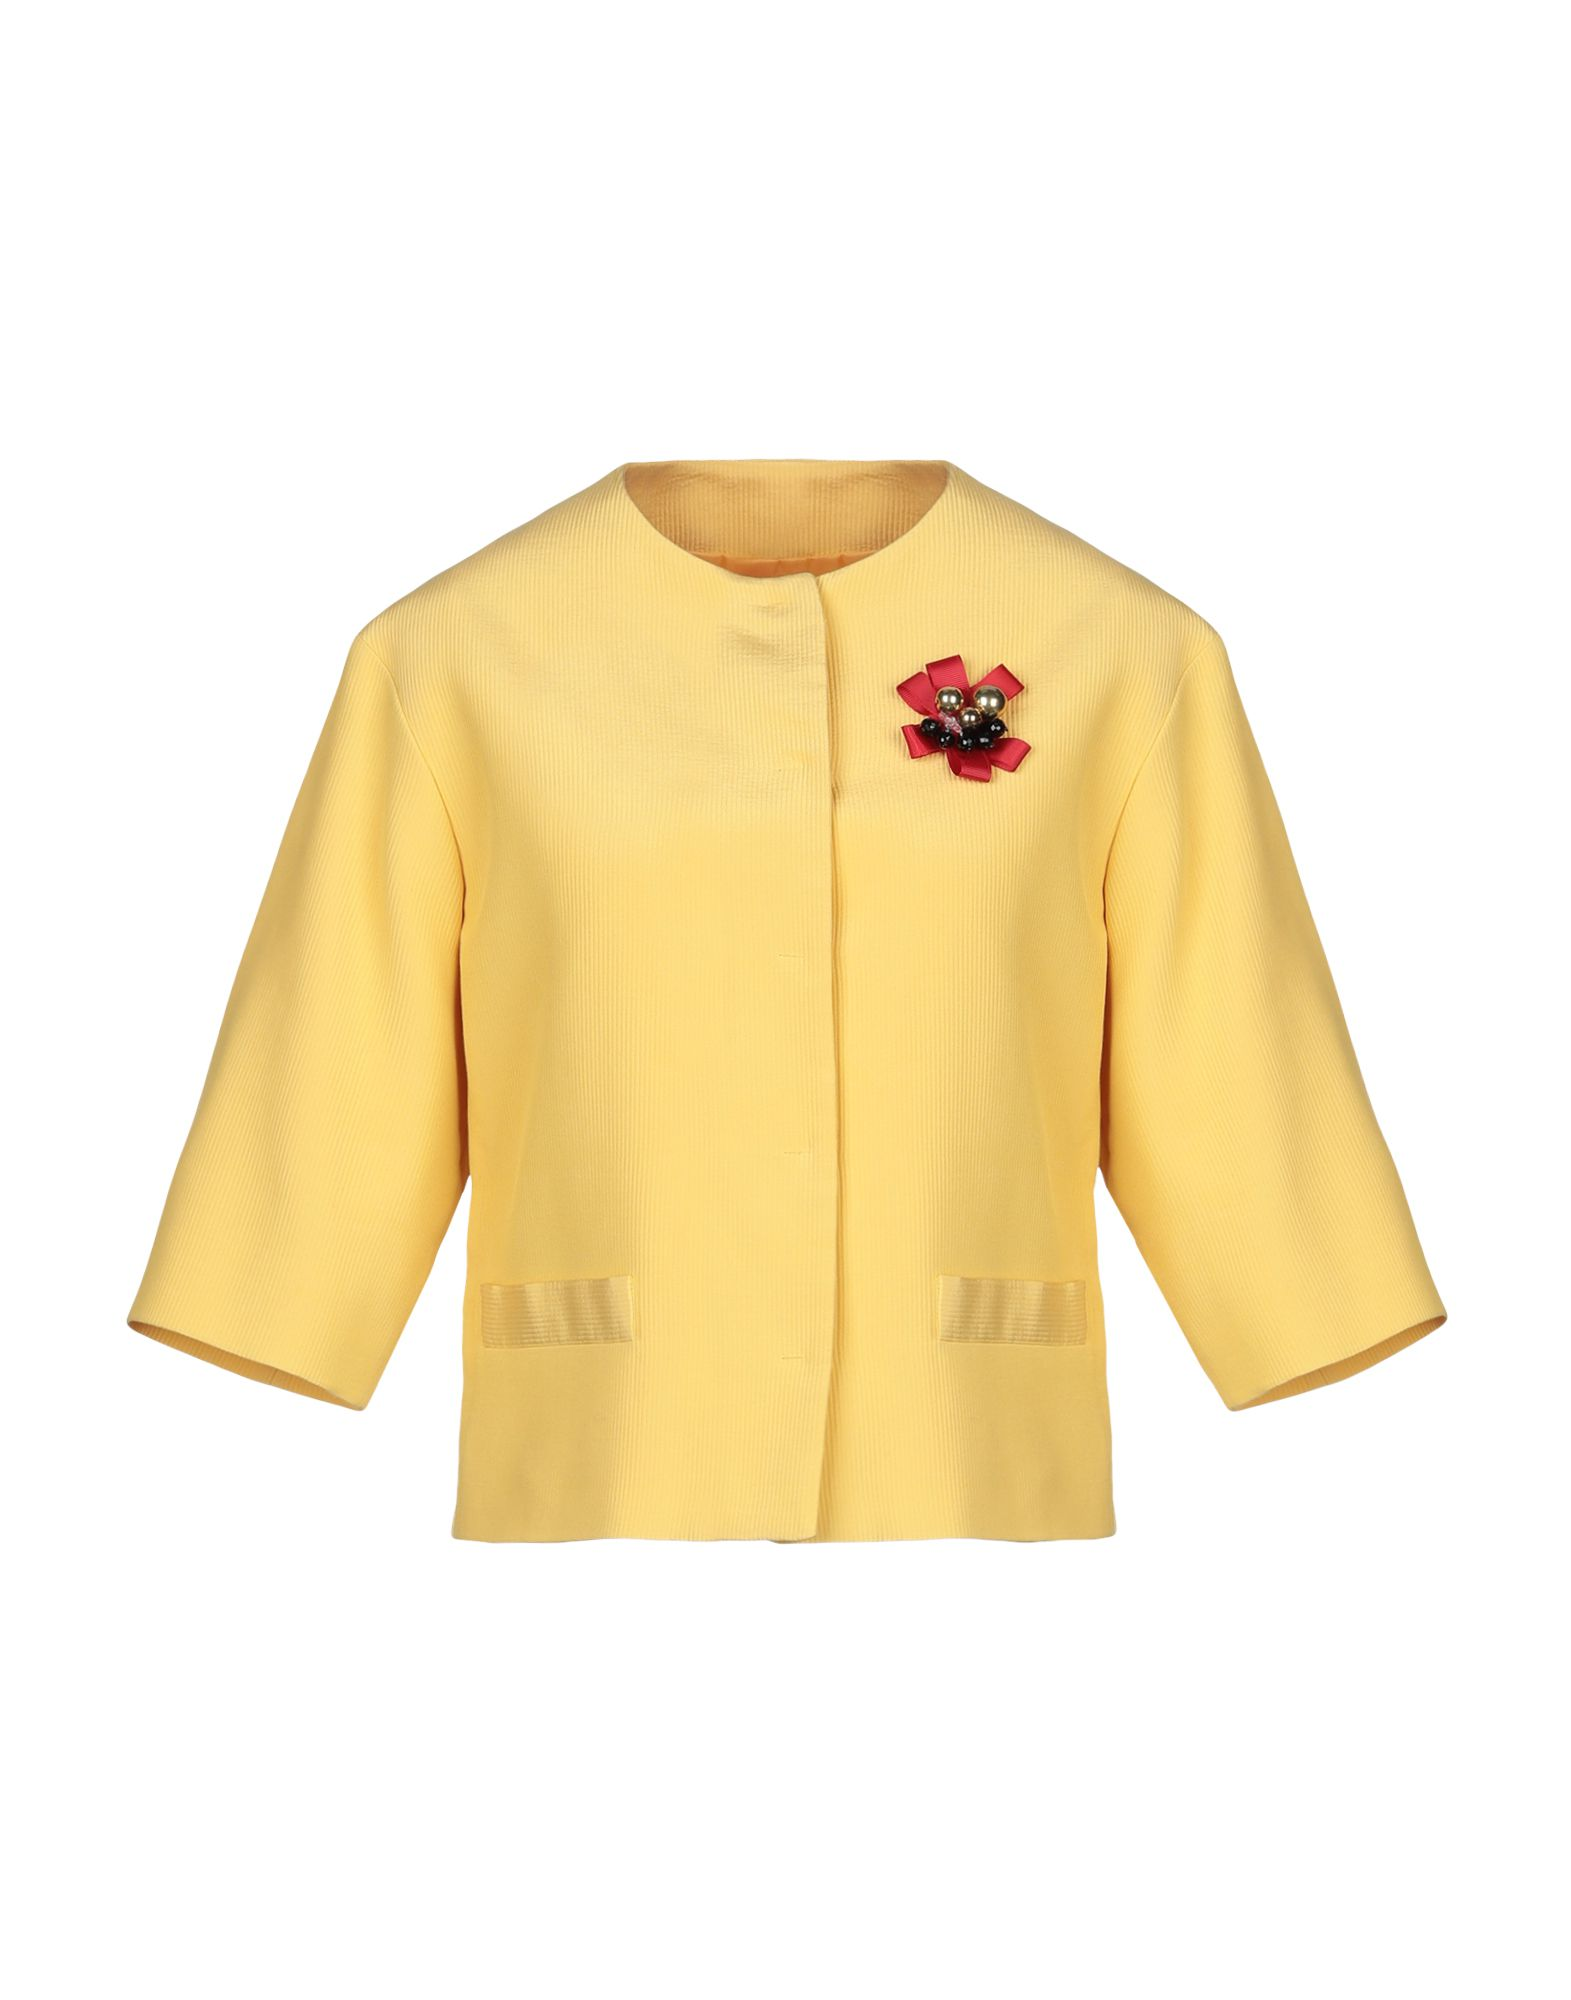 MOSCHINO CHEAP AND CHIC Пиджак moschino cheap and chic chic petals